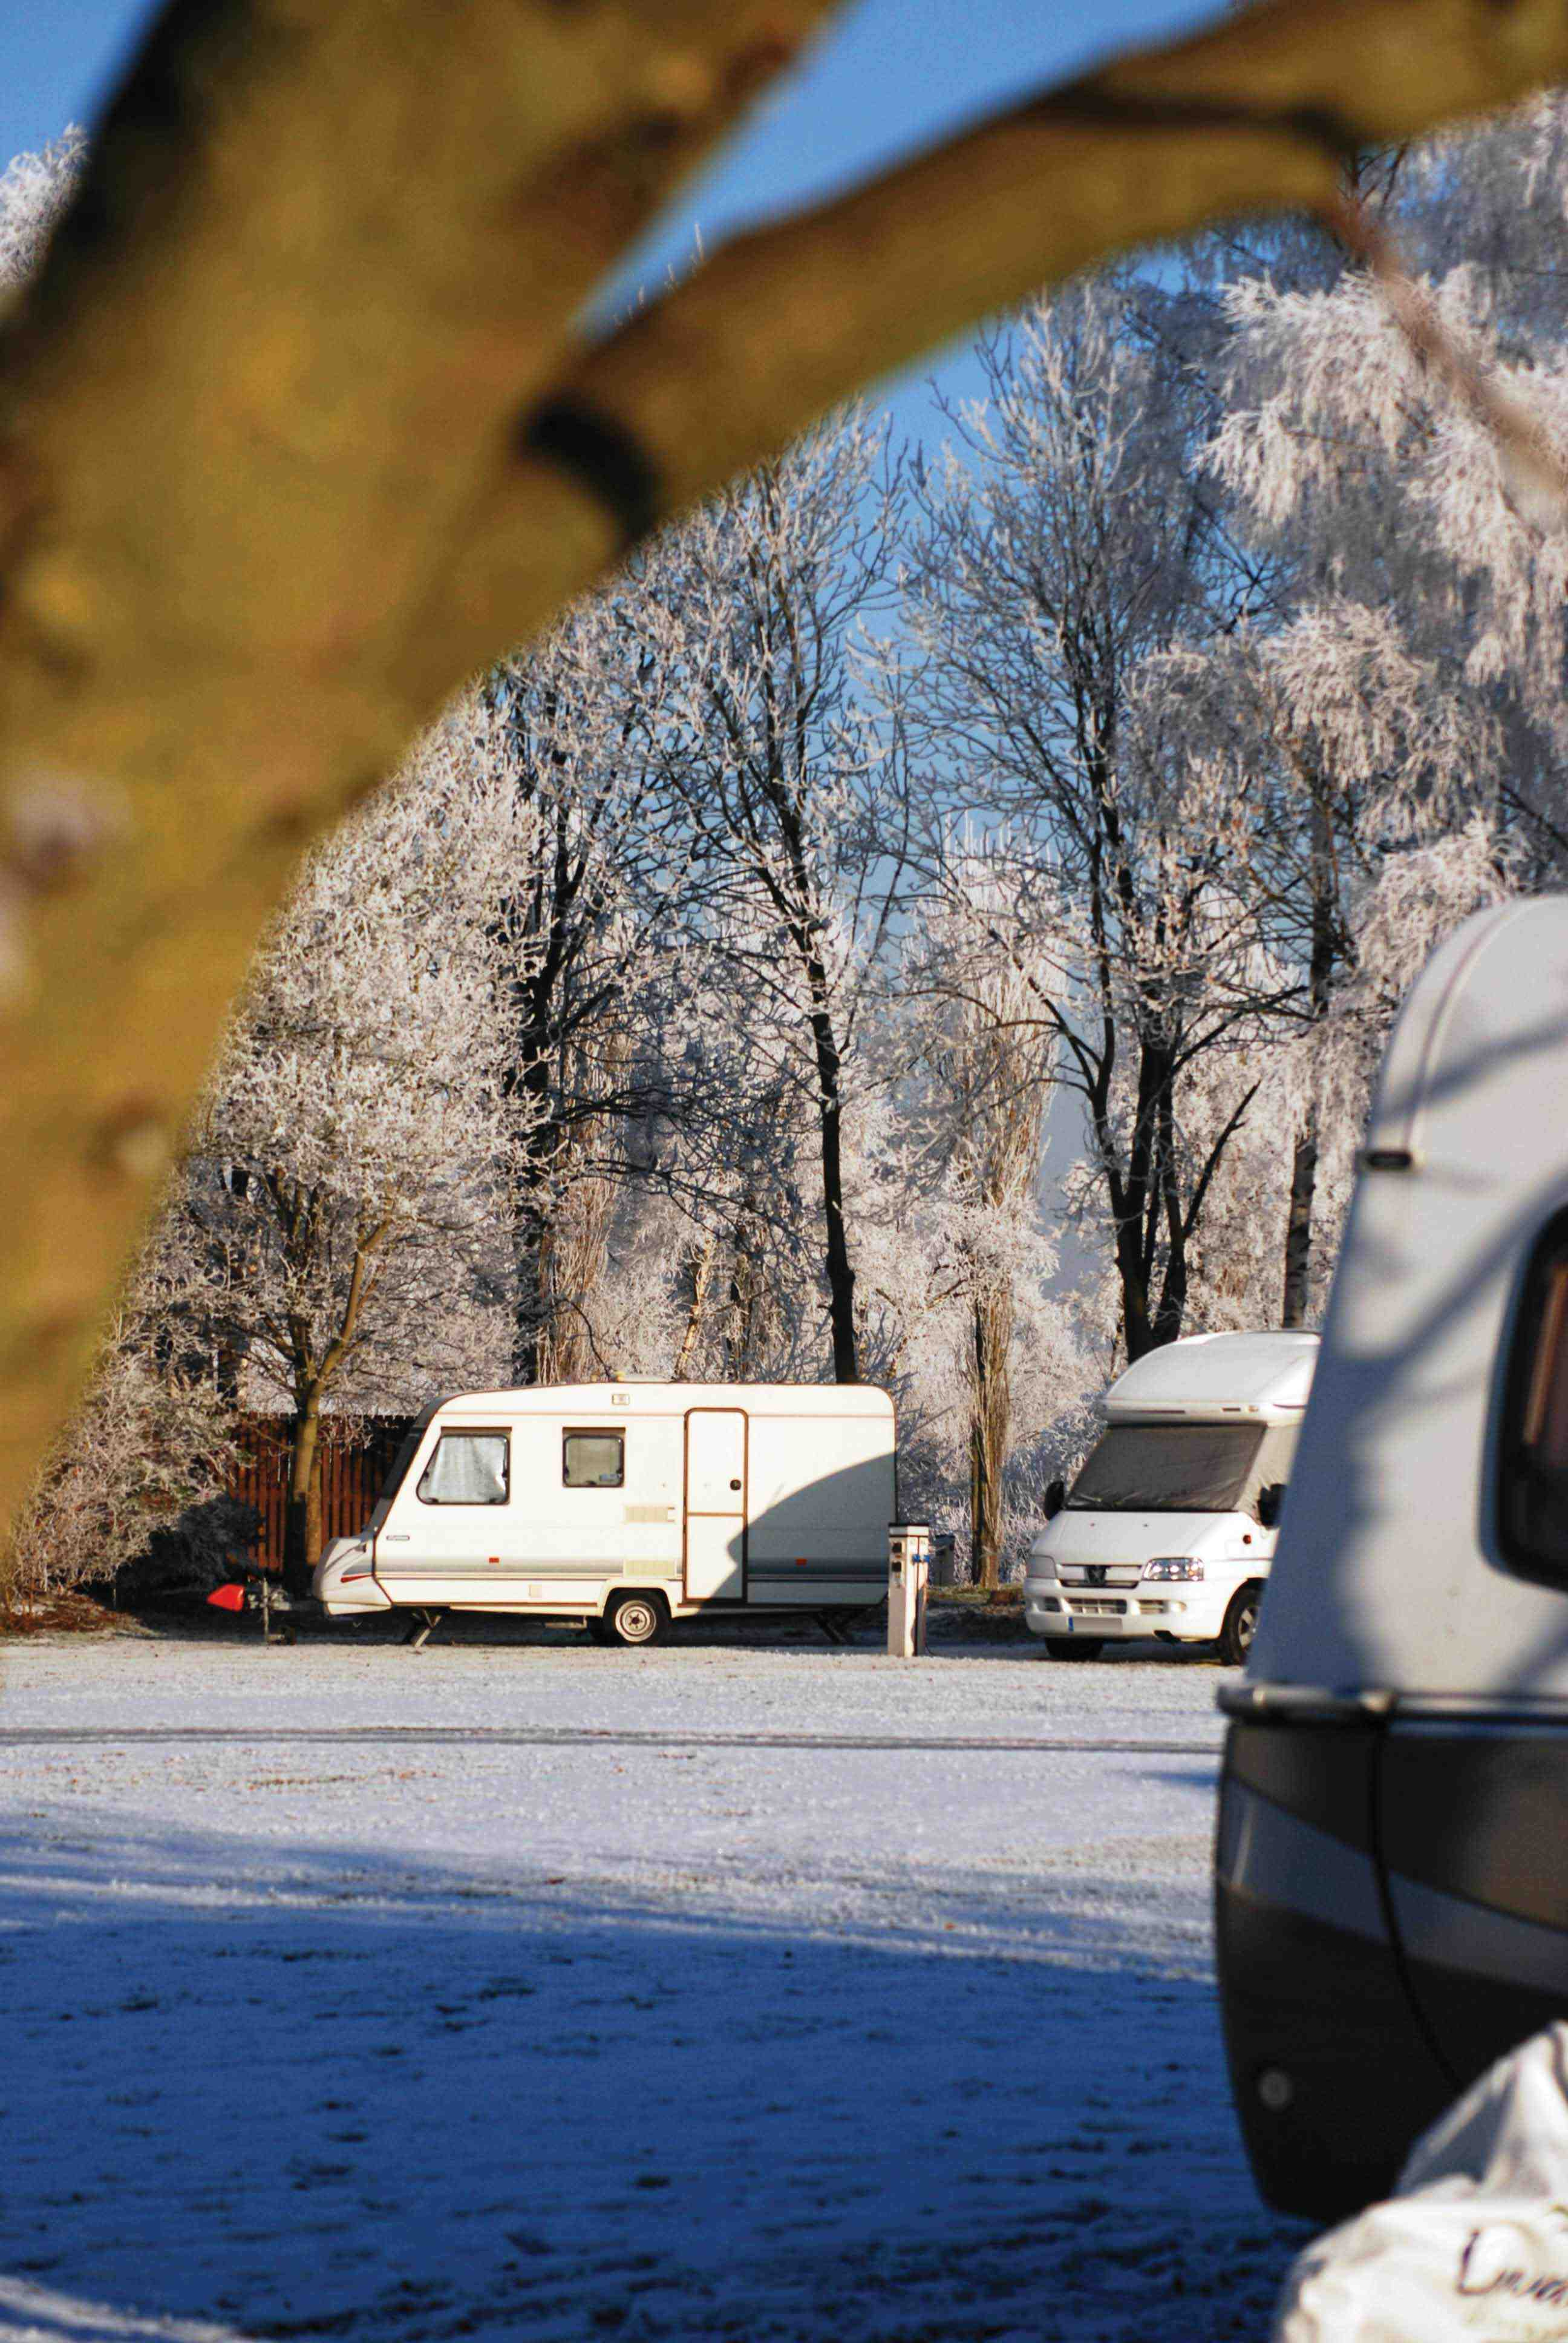 You don't need to store your unit away as many campsites are open all year